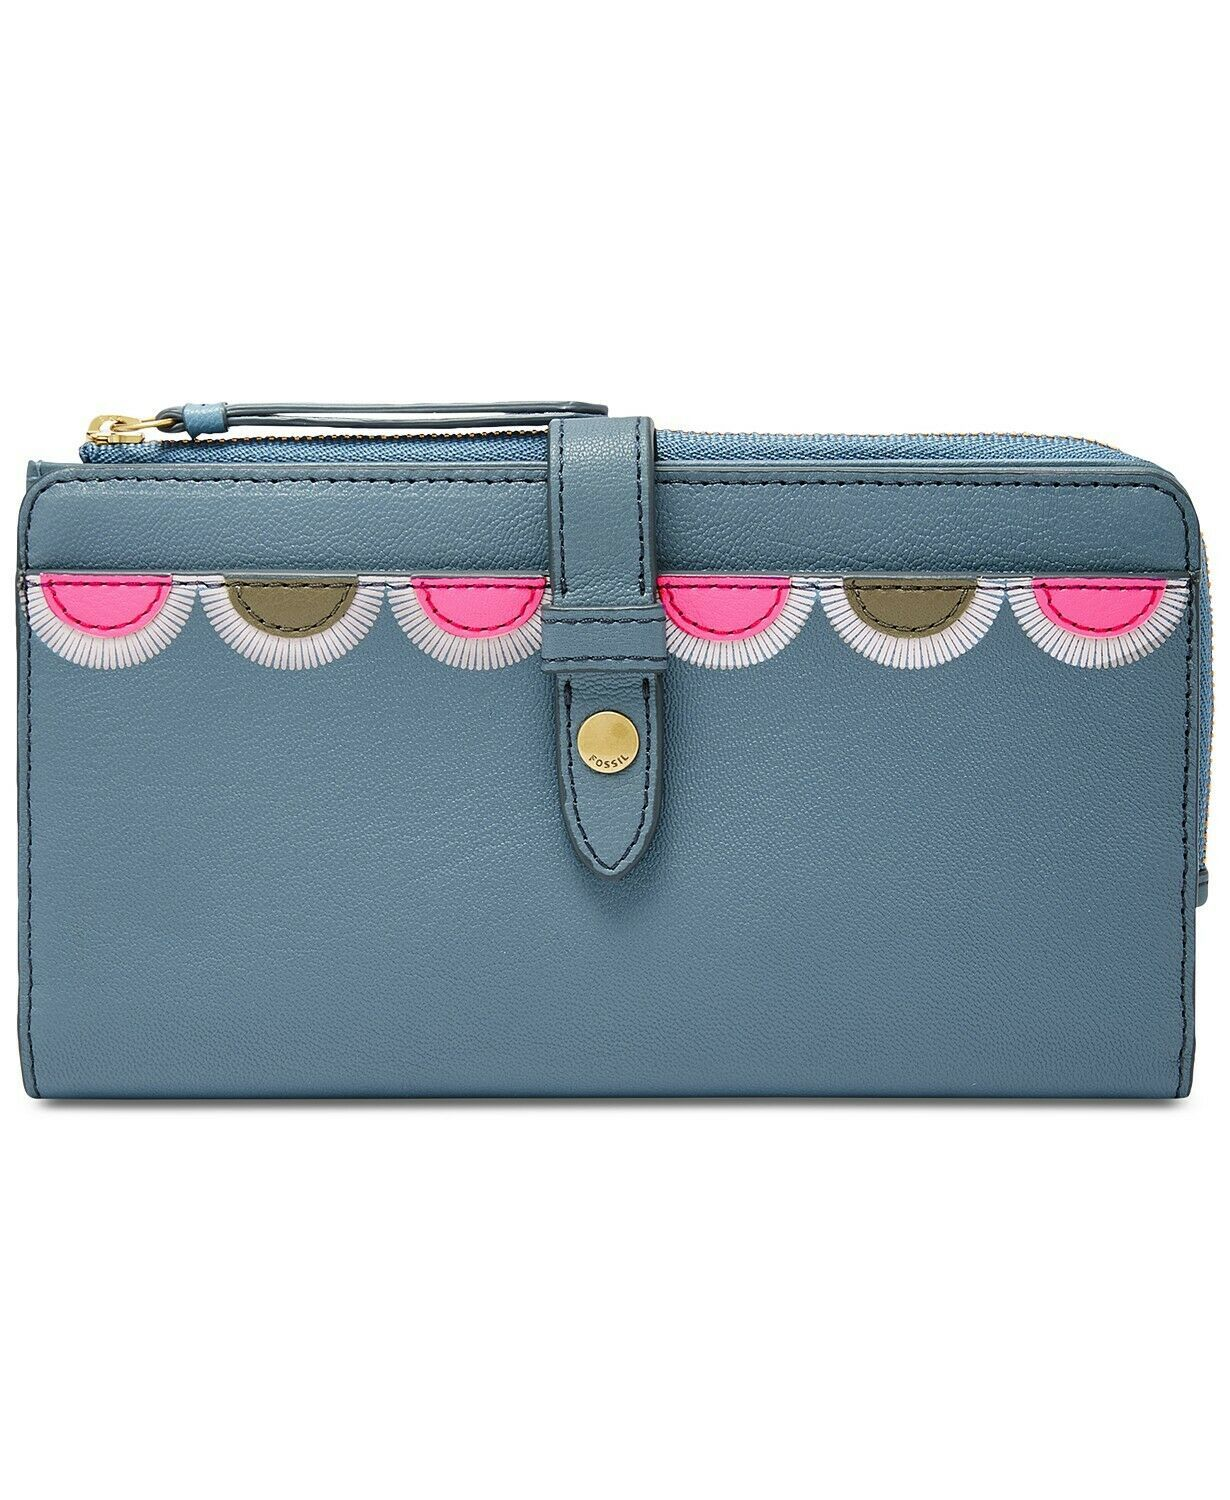 Primary image for Fossil Fiona Leather Tab Wallet Clutch, Faded Indigo $75